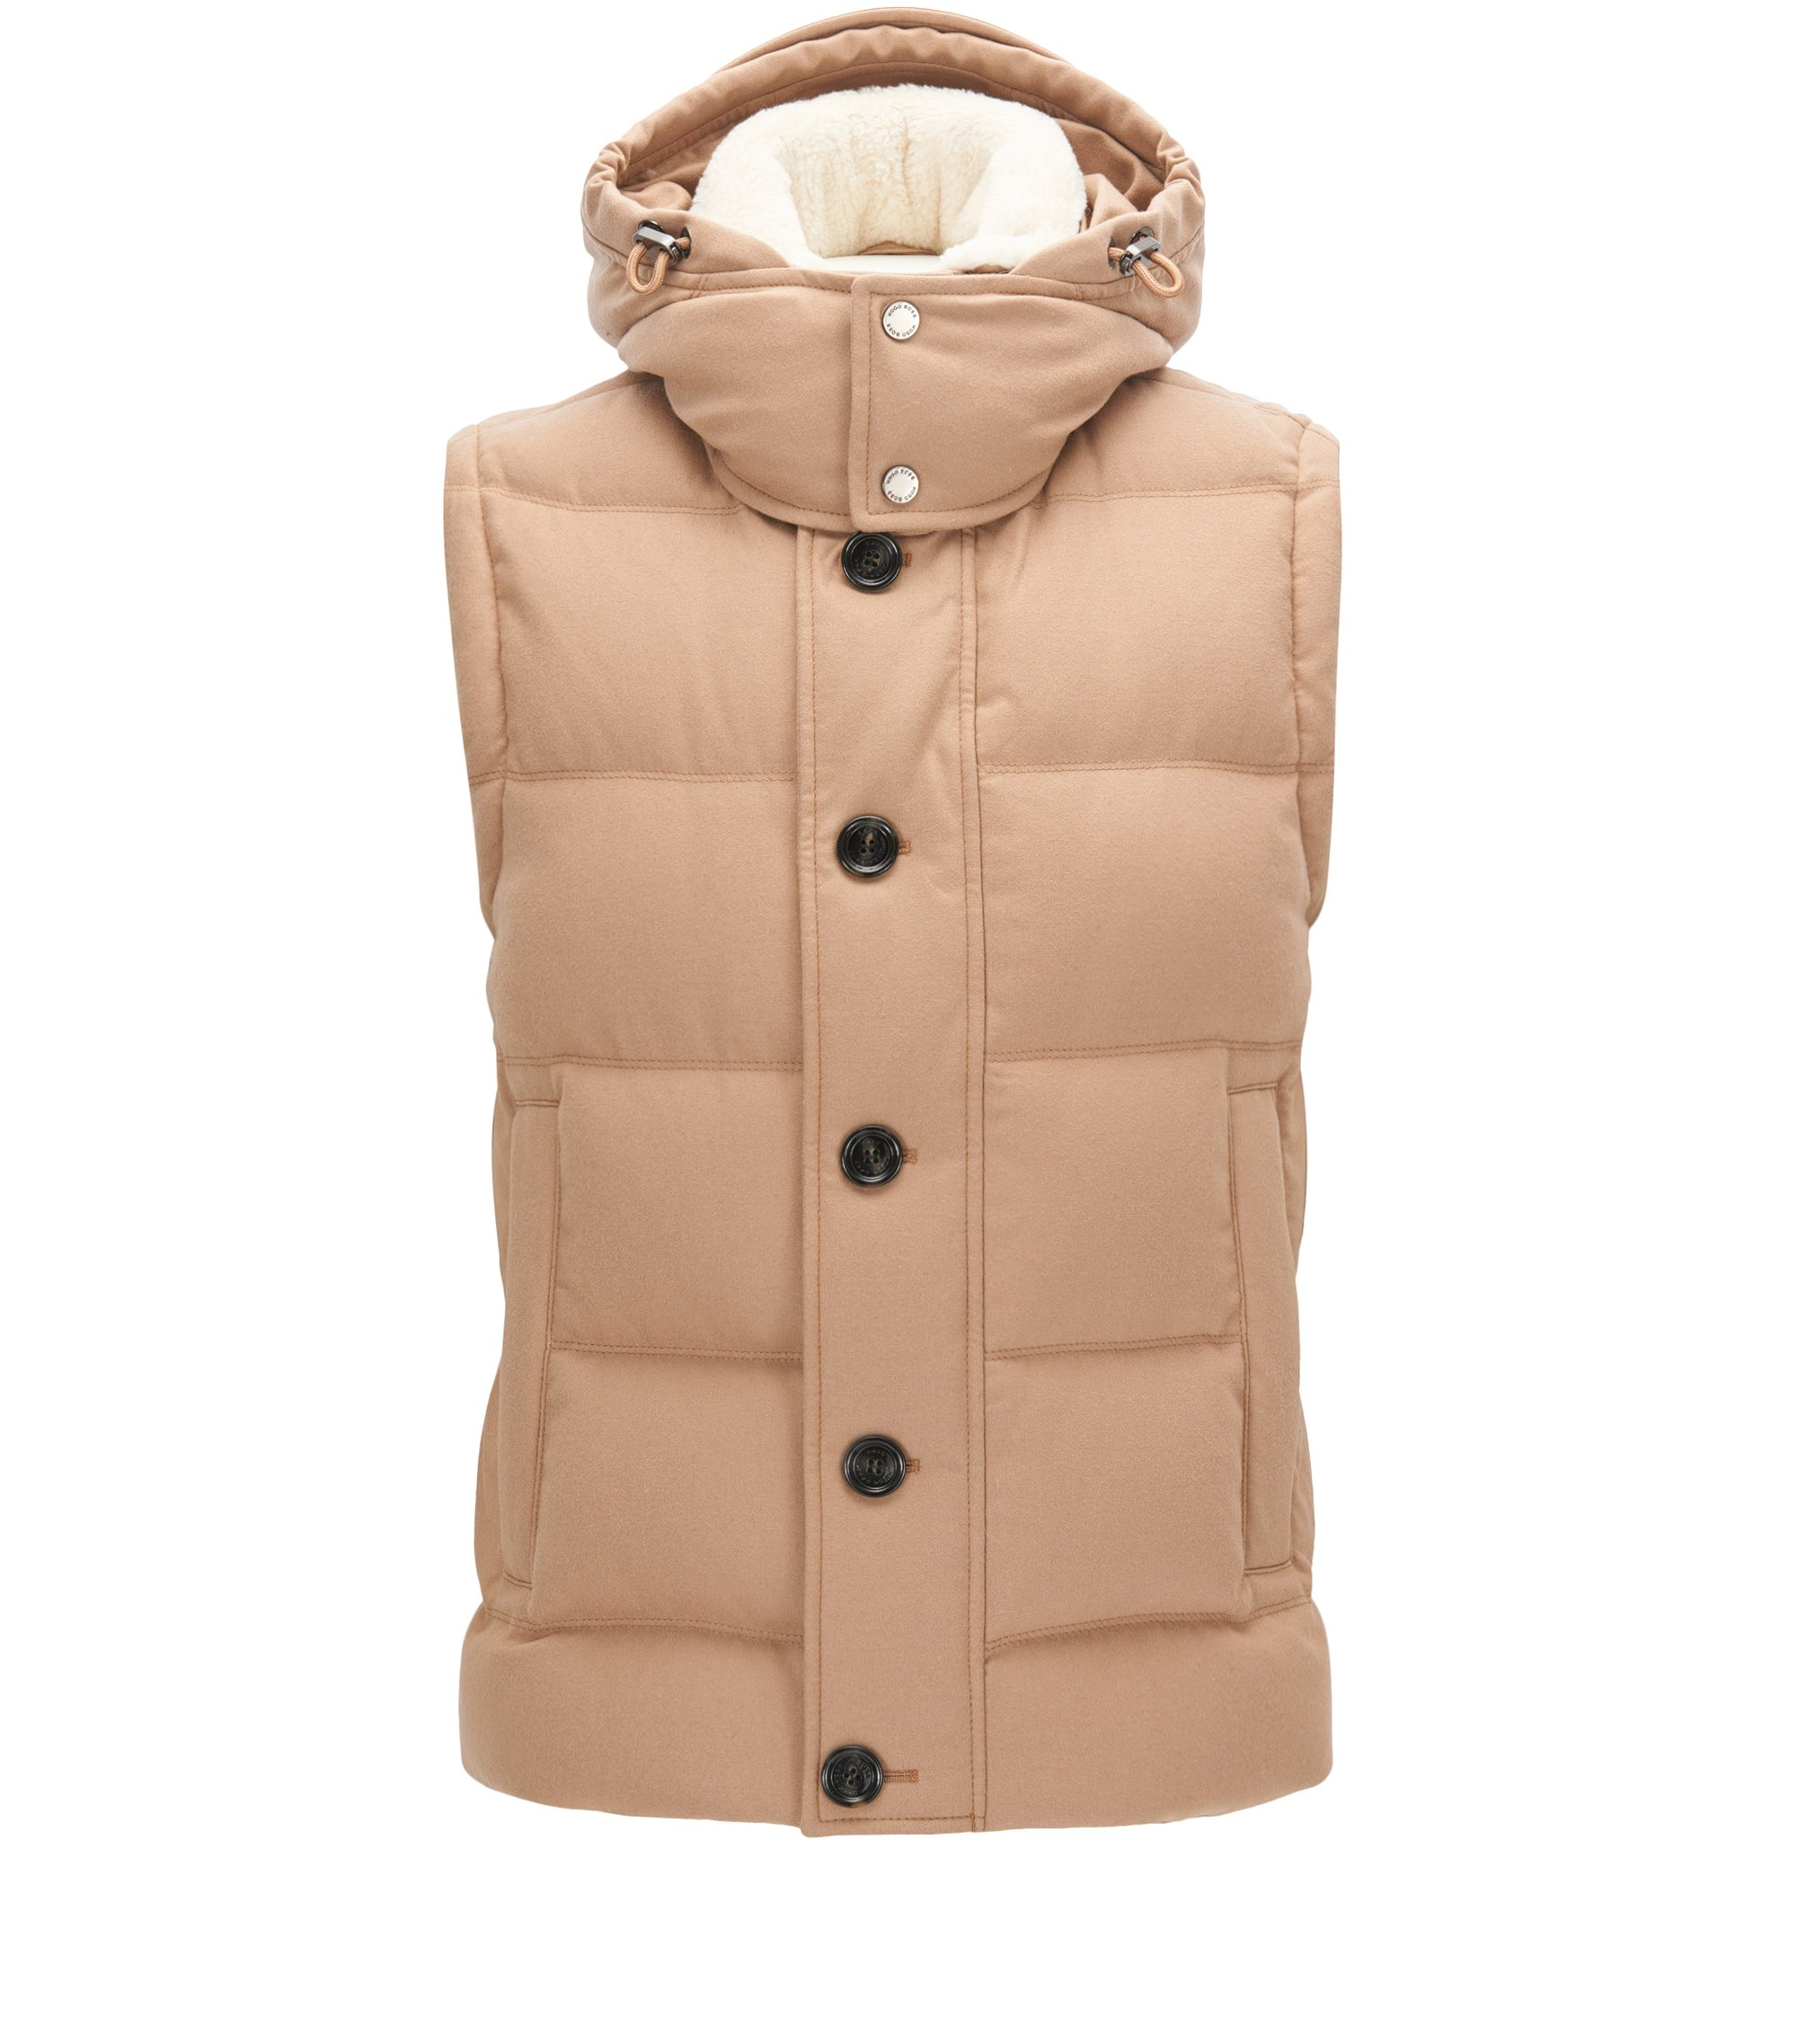 Gilet tecnico relaxed fit con imbottitura di piume, Beige